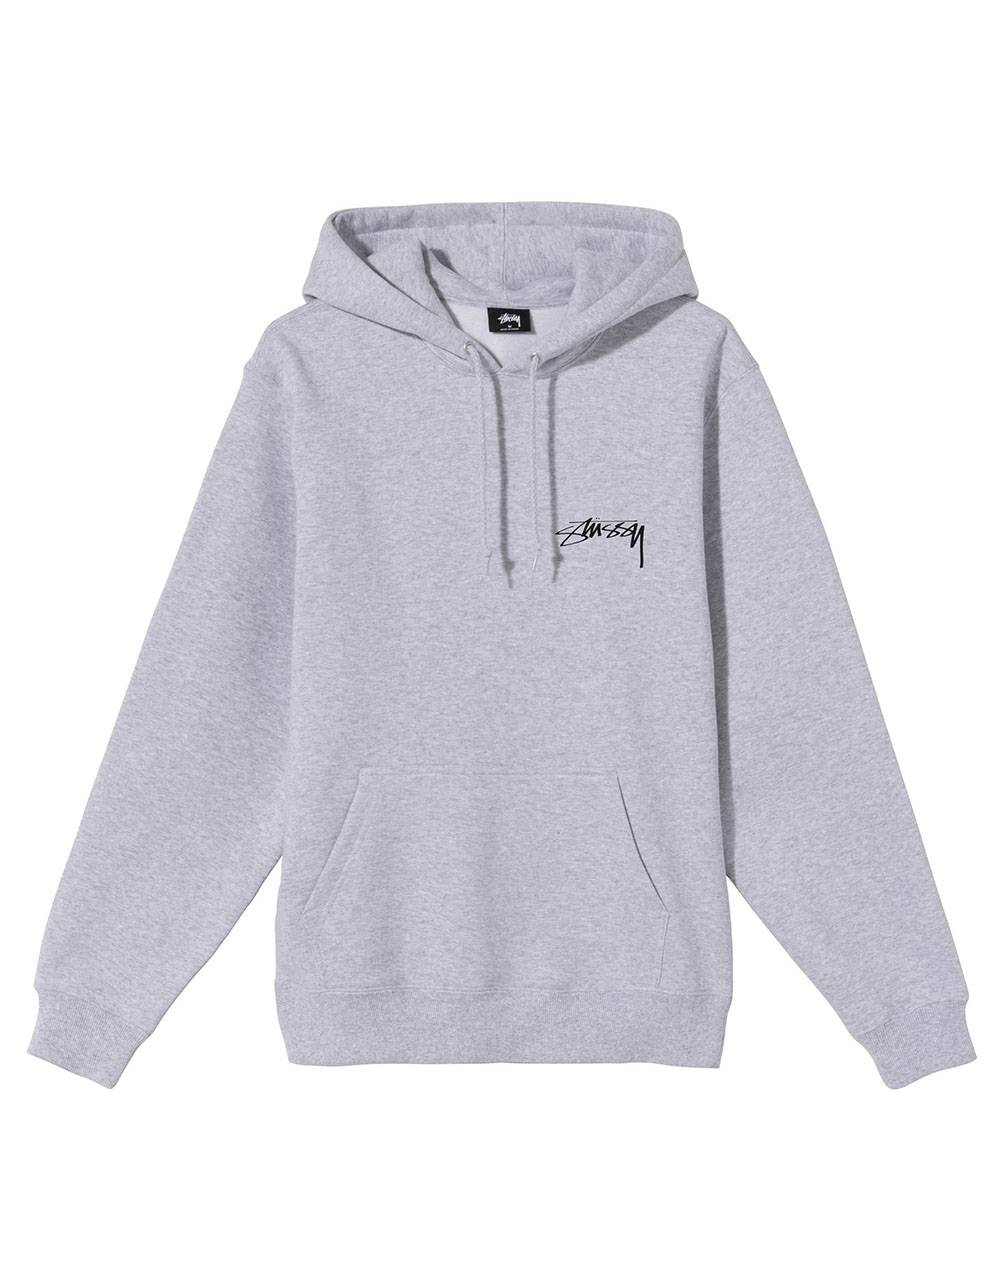 Stussy itp roses hoodie - ash heather Stussy Sweater 119,00 €